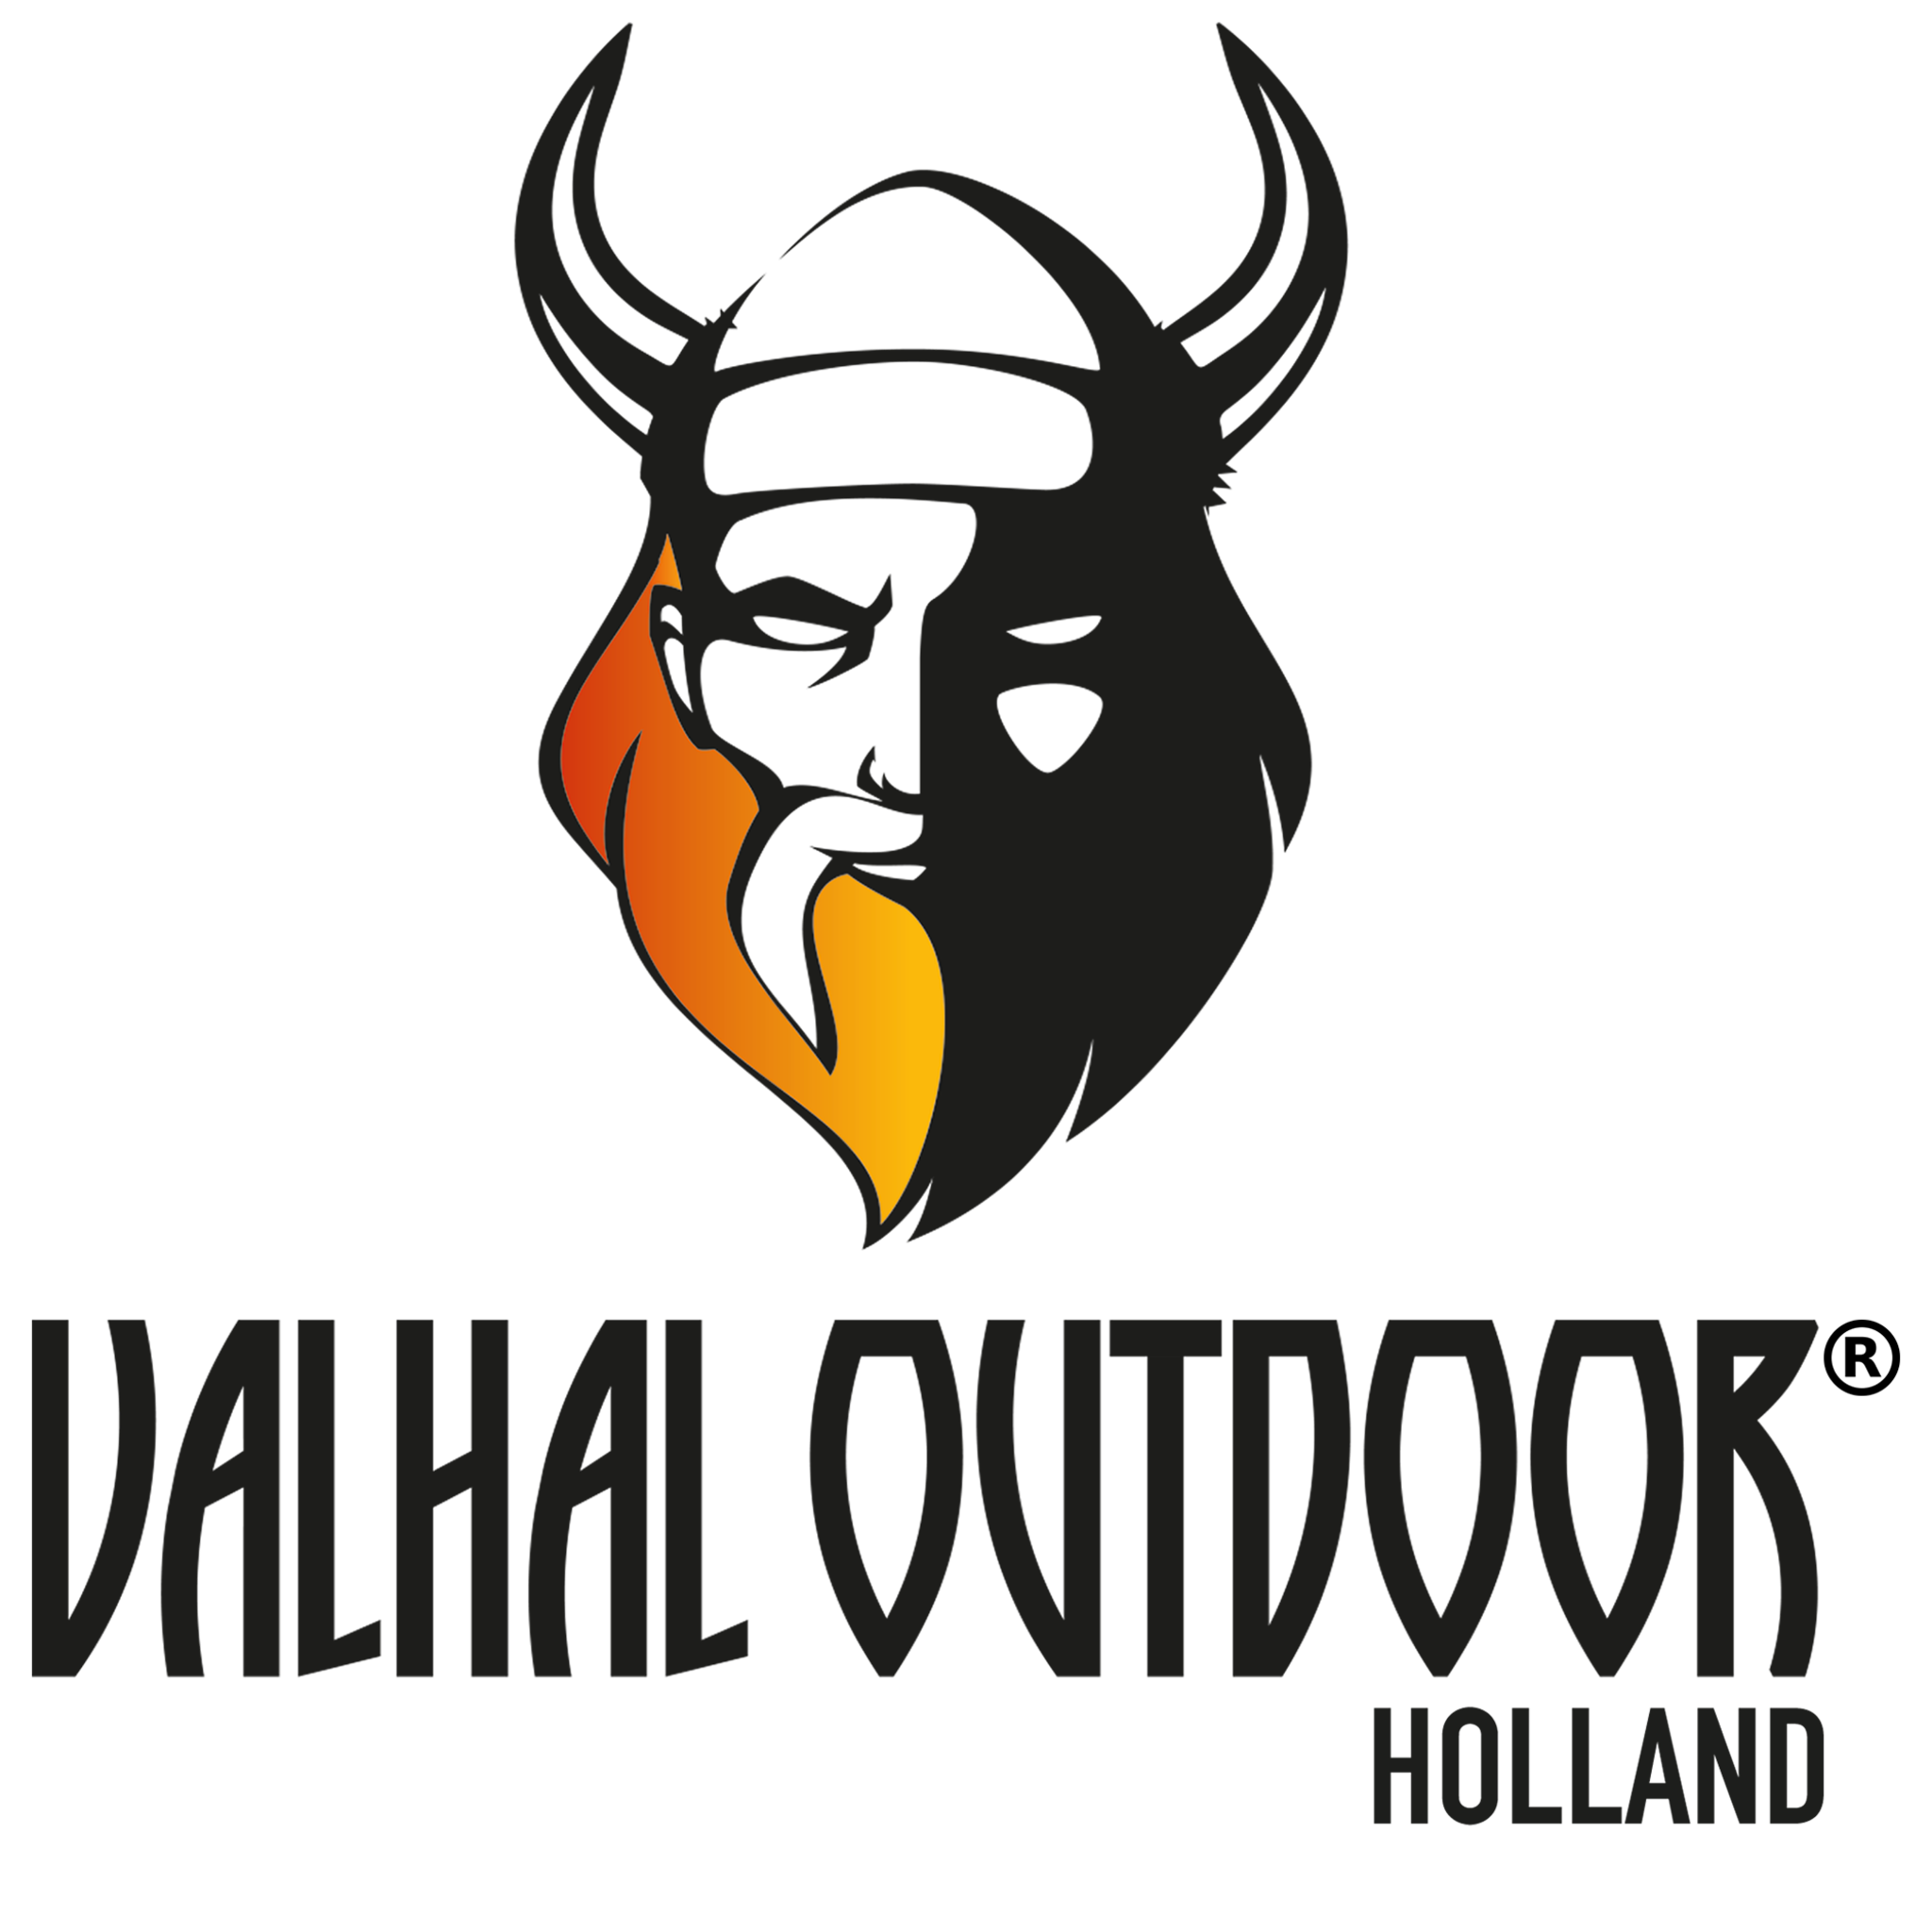 Valhal Outdoor Dutch Oven 8 Liter